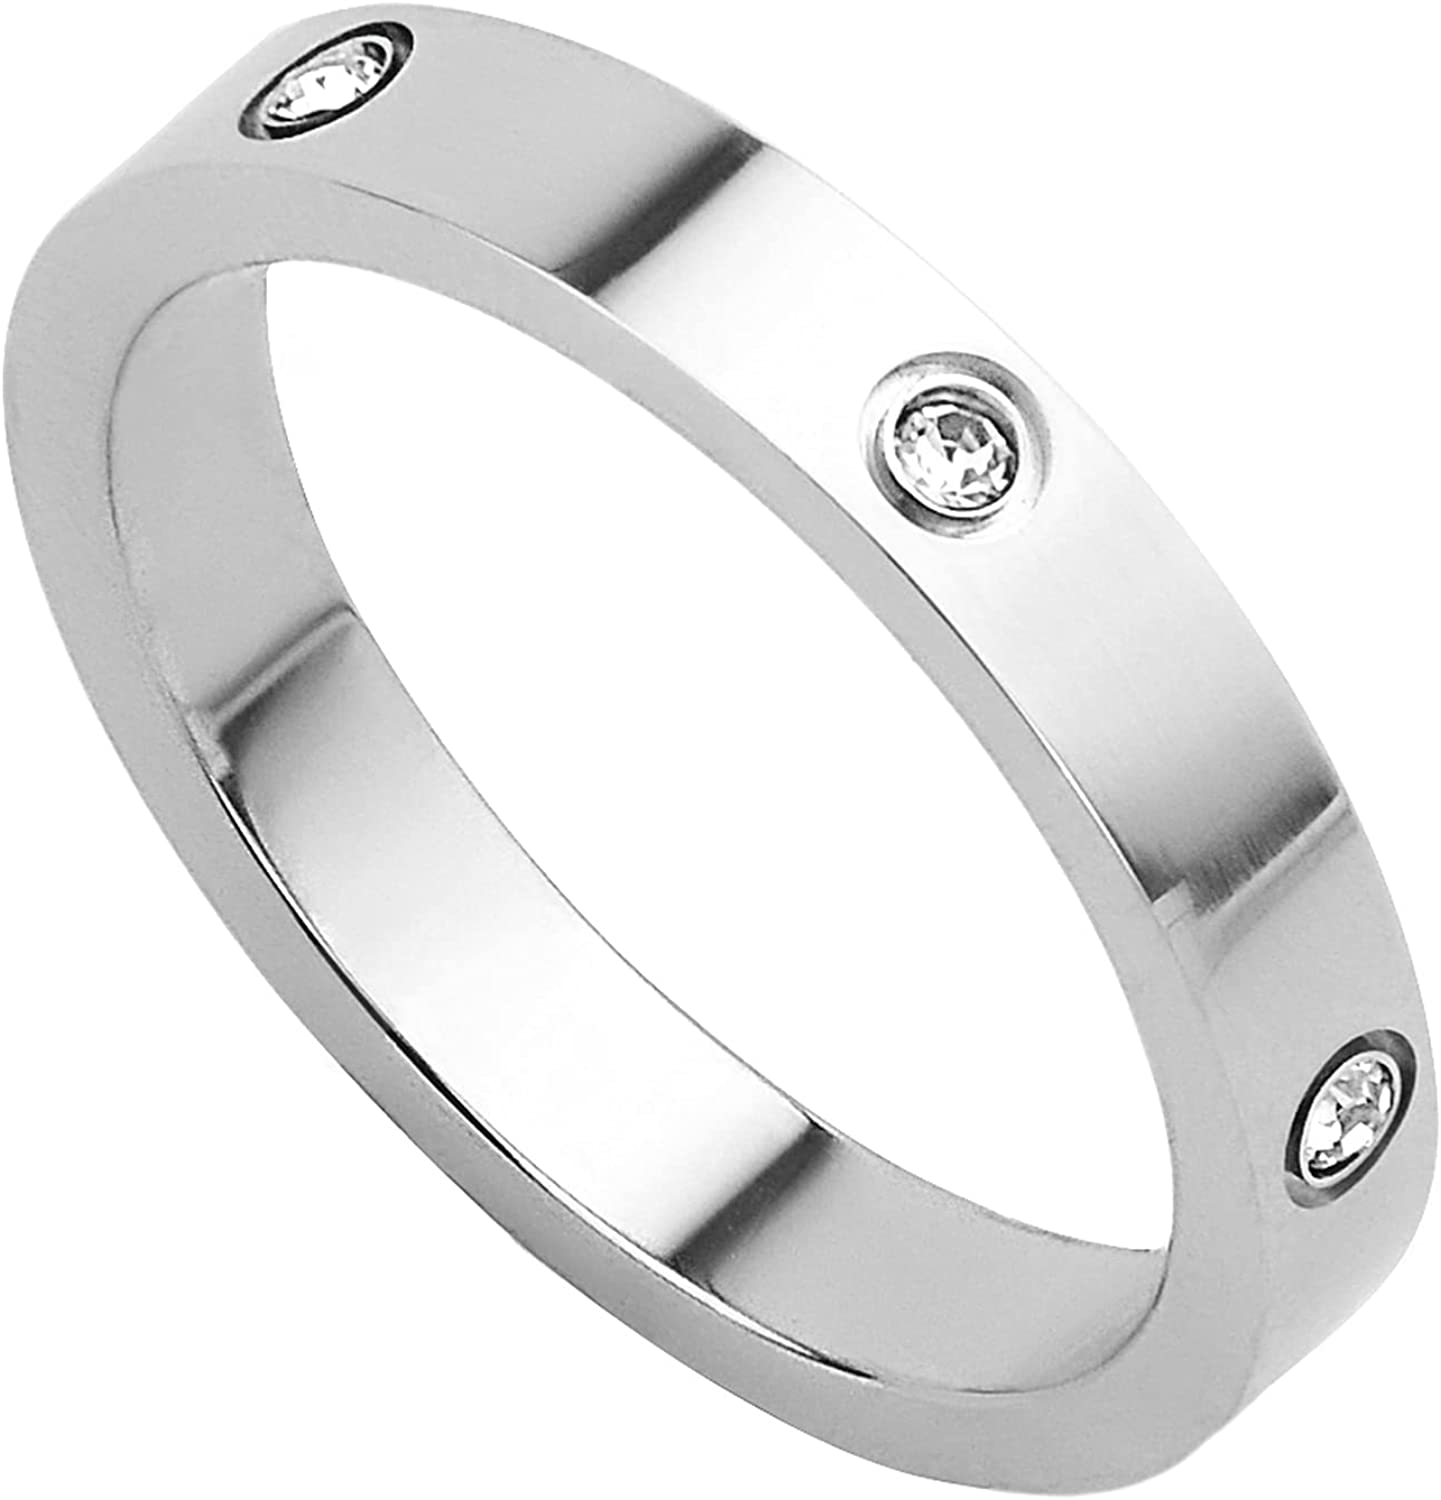 KouGeMou Fashion Stainless Steel Ring Marry Diamond Rings Simplicity Finger Ring Jewelry Couple Gifts for Women&Men Size 6-11